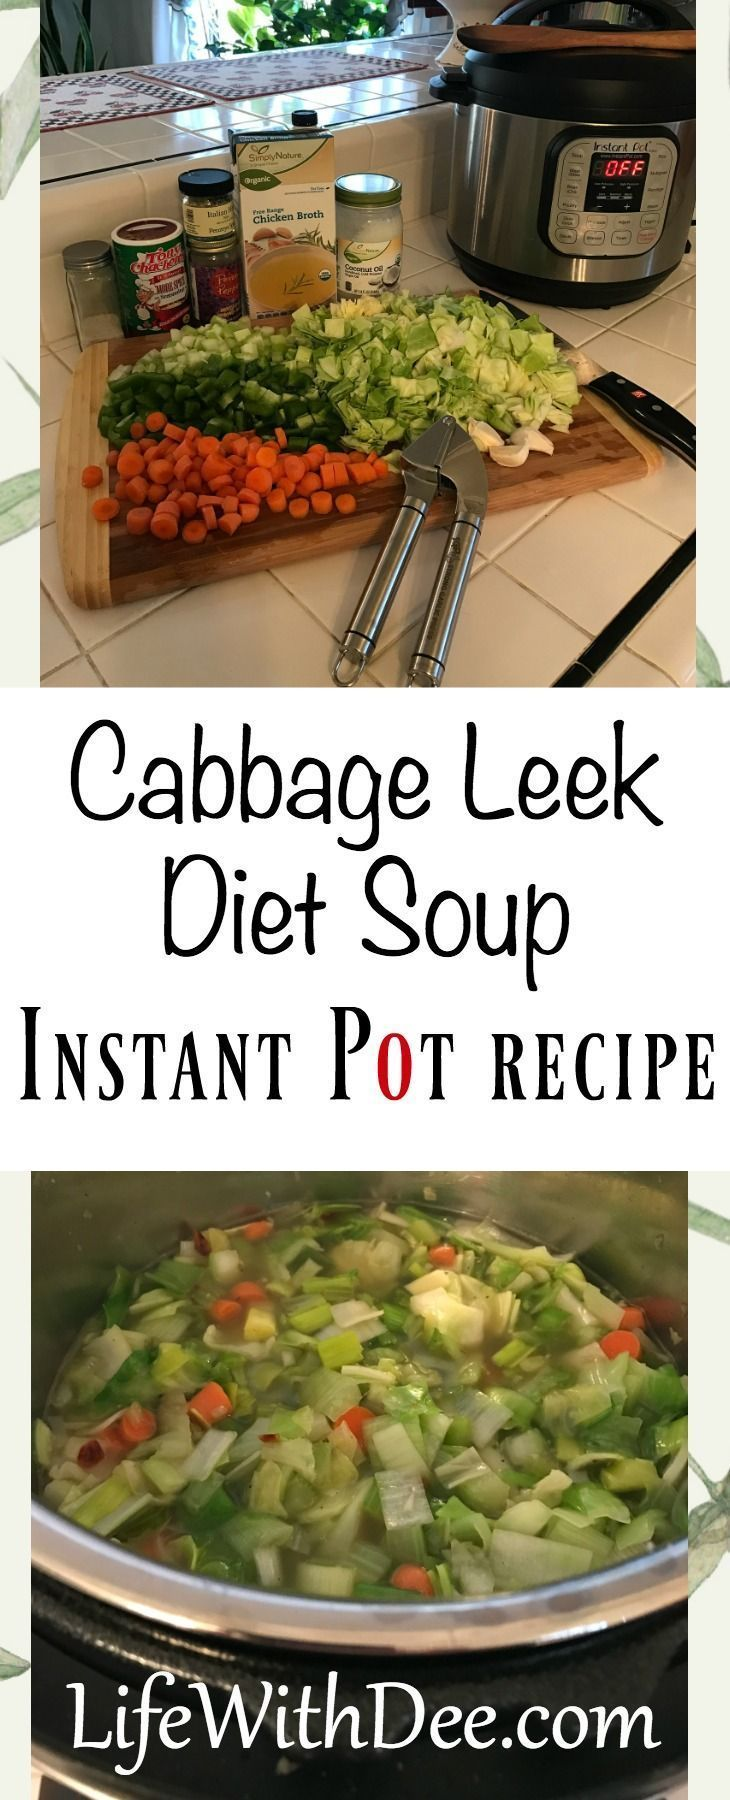 Cabbage Leek Diet Soup An Instant Pot